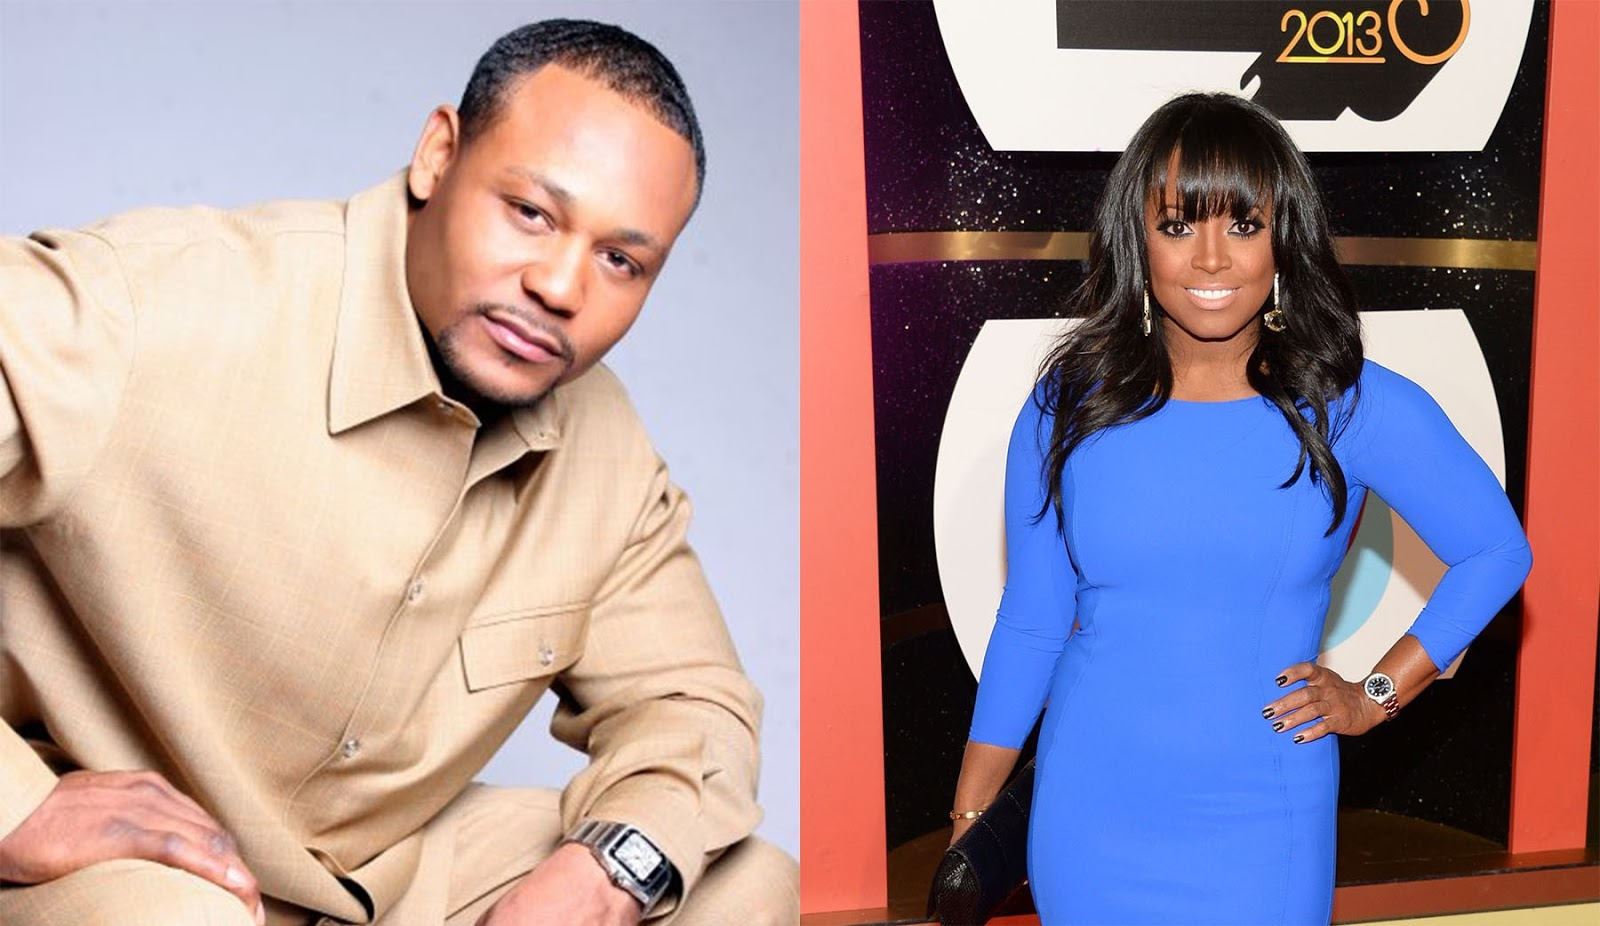 Images for keisha knight pulliam engaged - keisha knight pulliam engaged